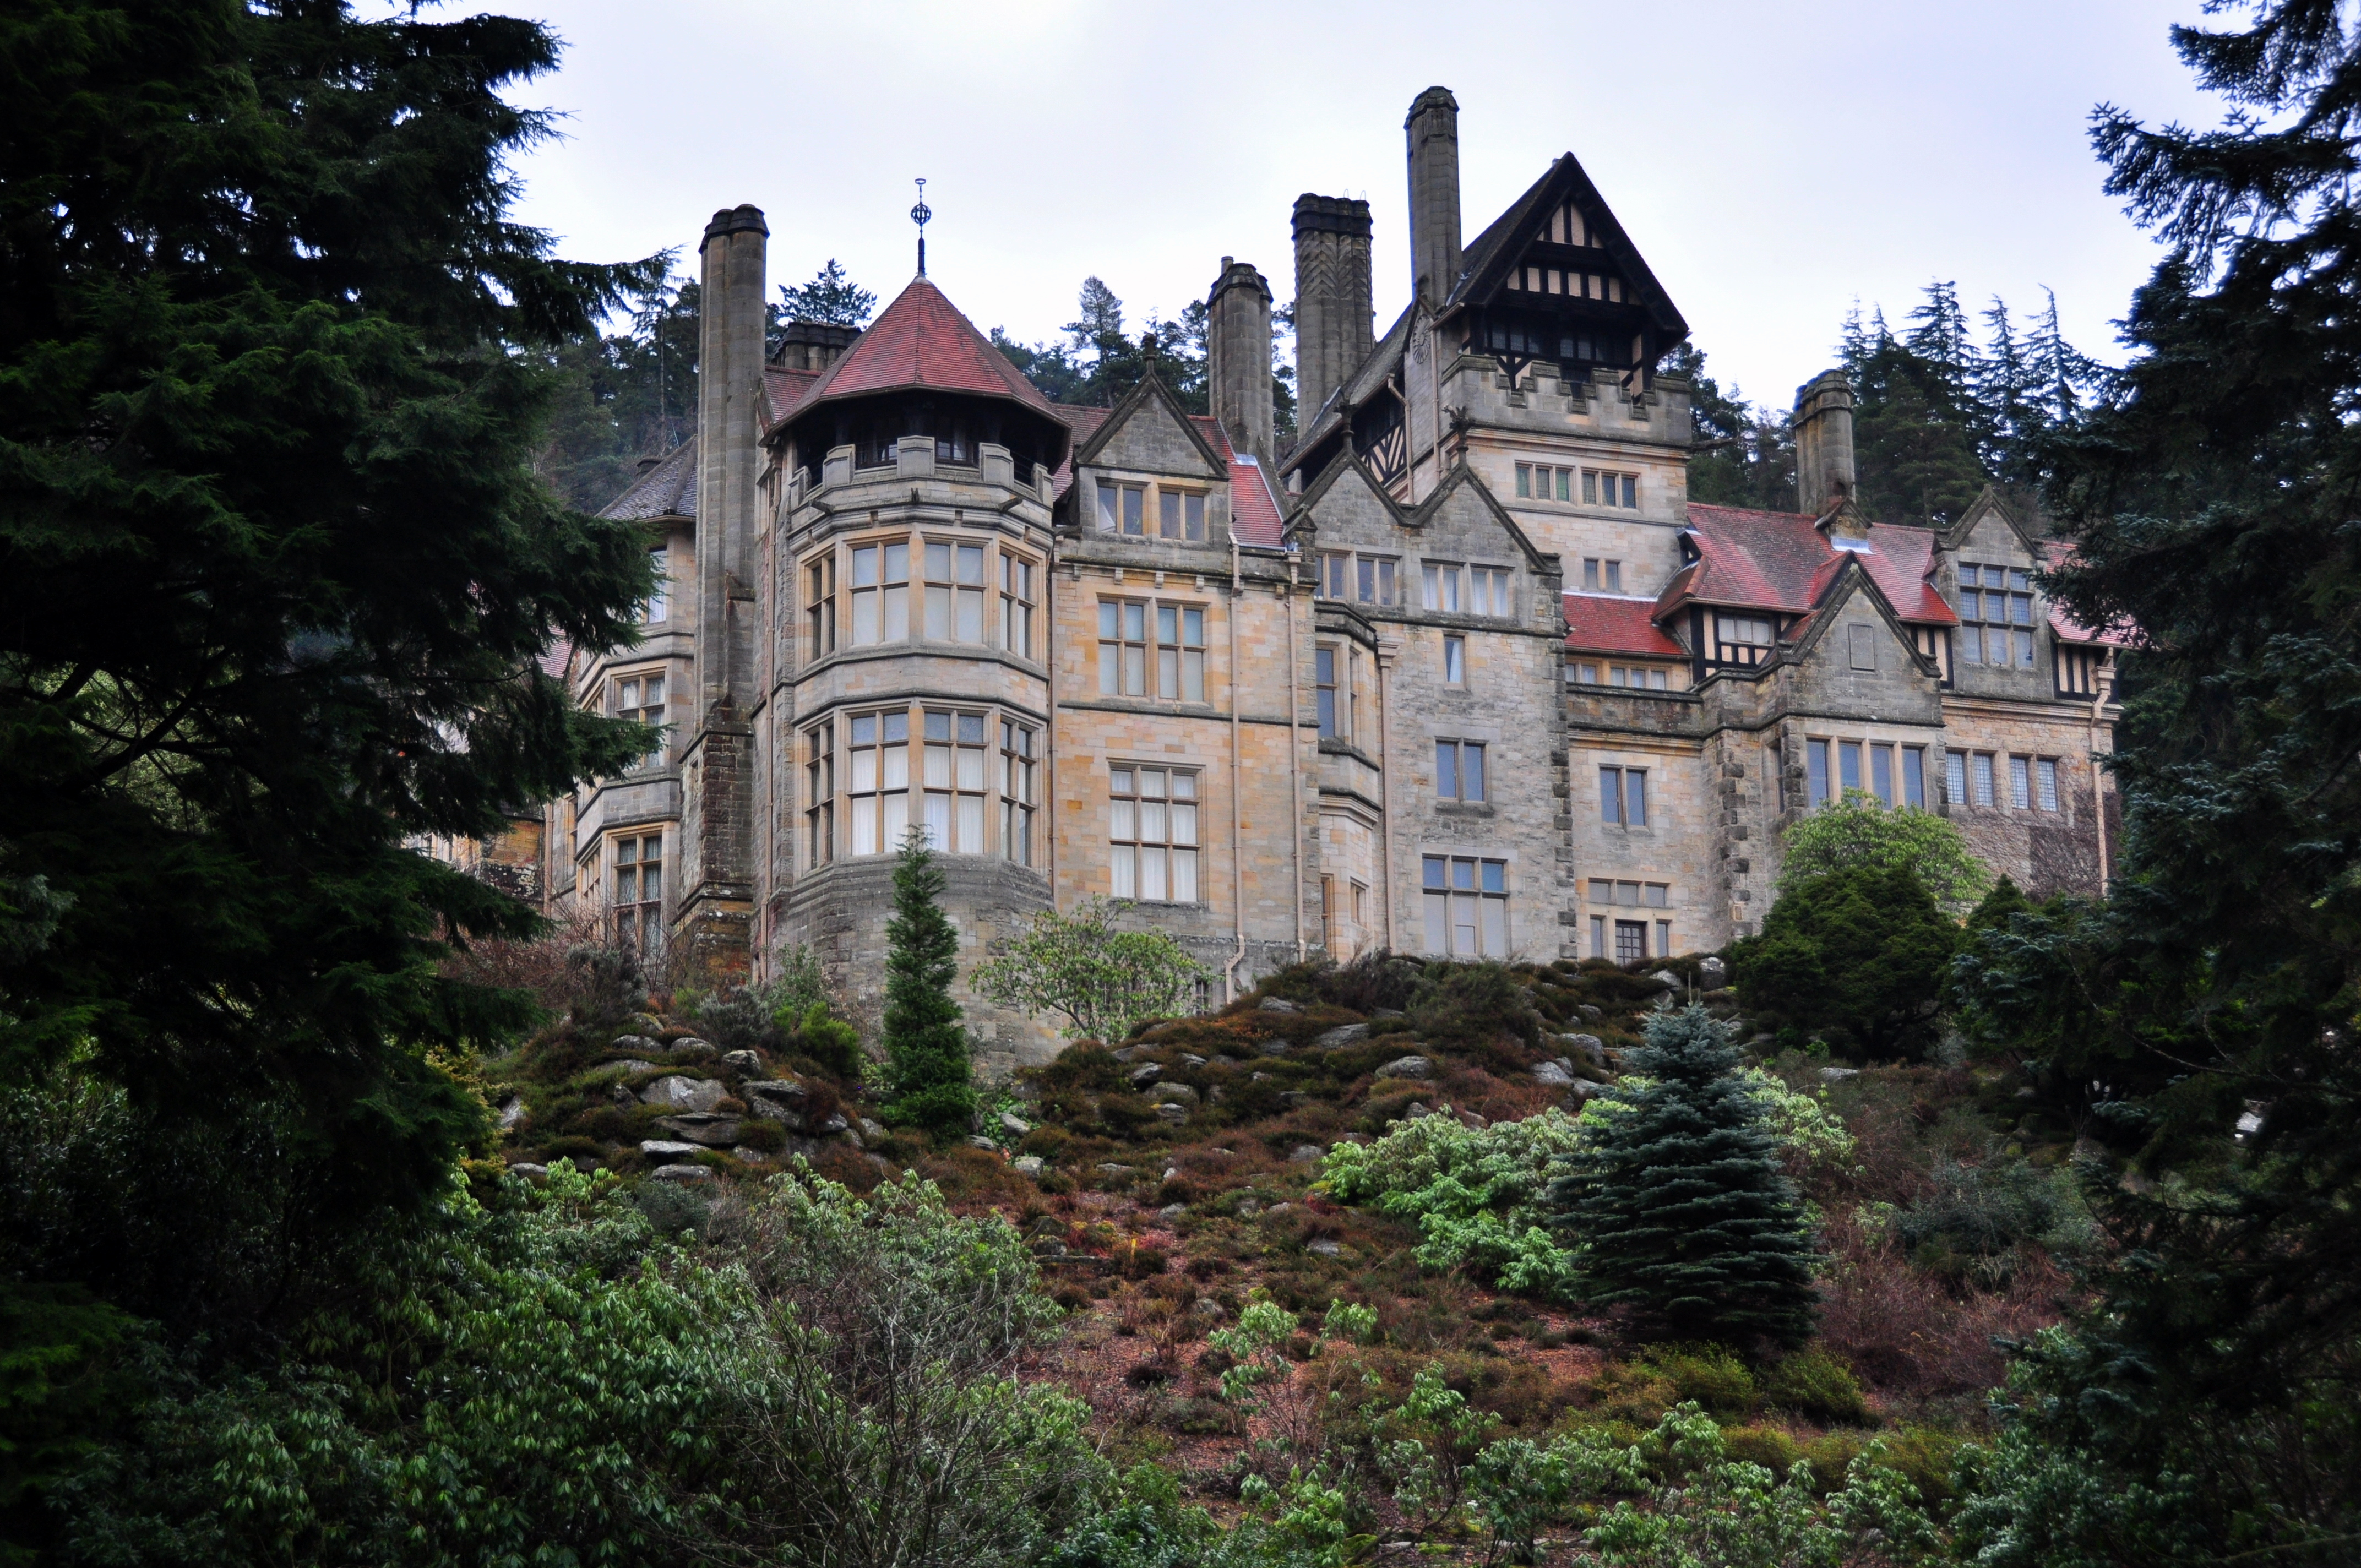 File:Cragside (5472222948).jpg - Wikimedia Commons